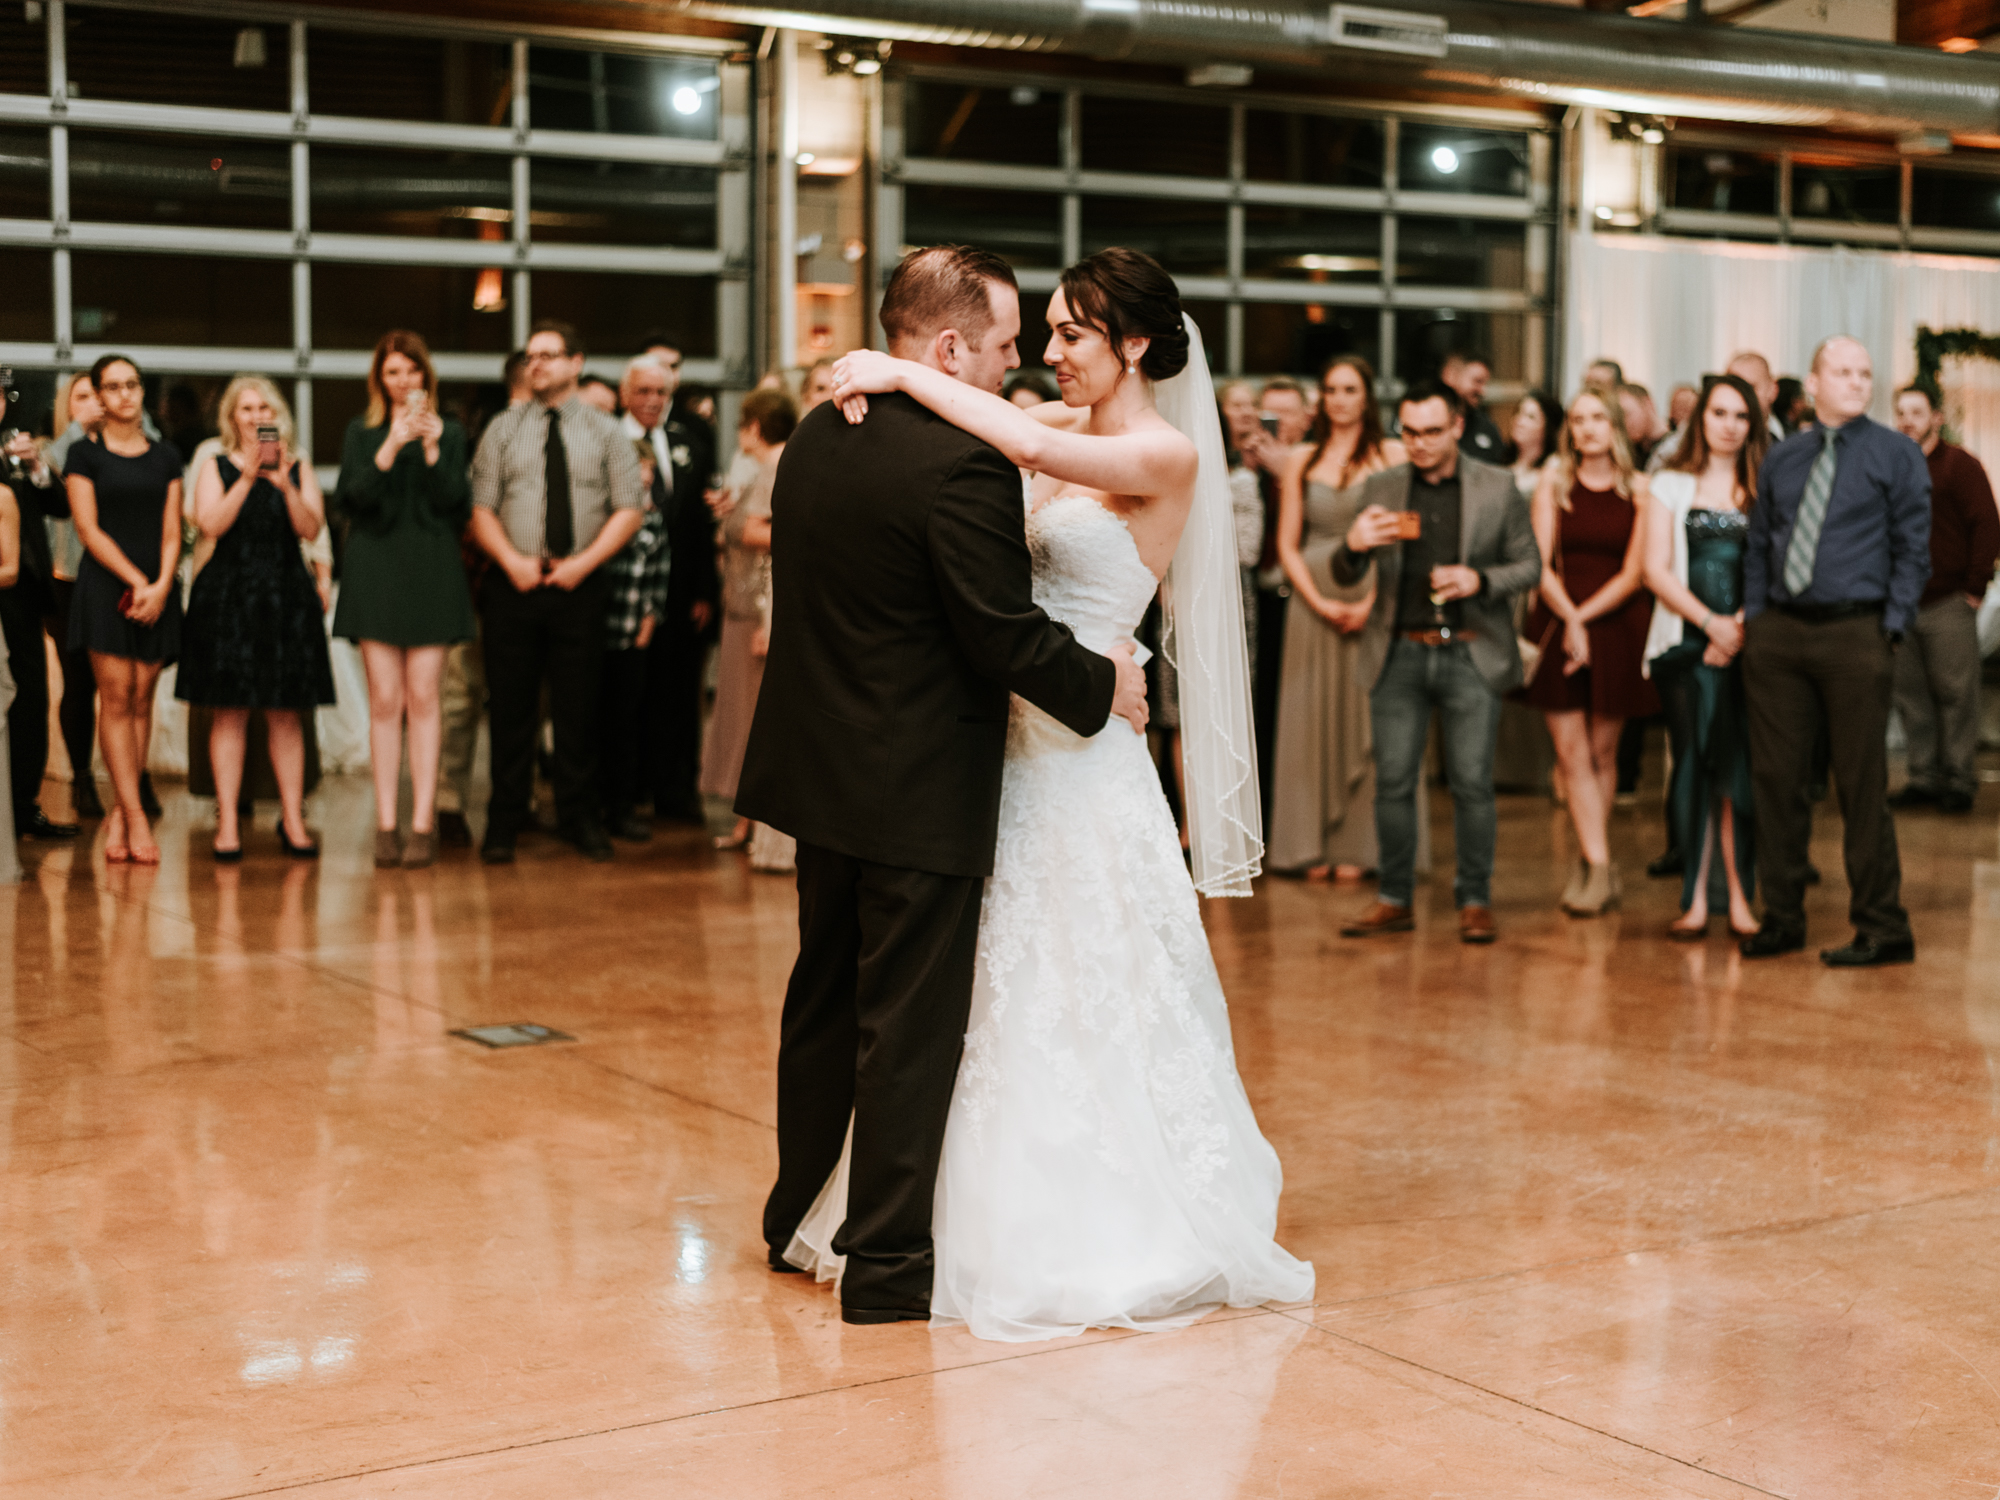 Stolen Glimpses Seattle Wedding Photographers 100.jpg